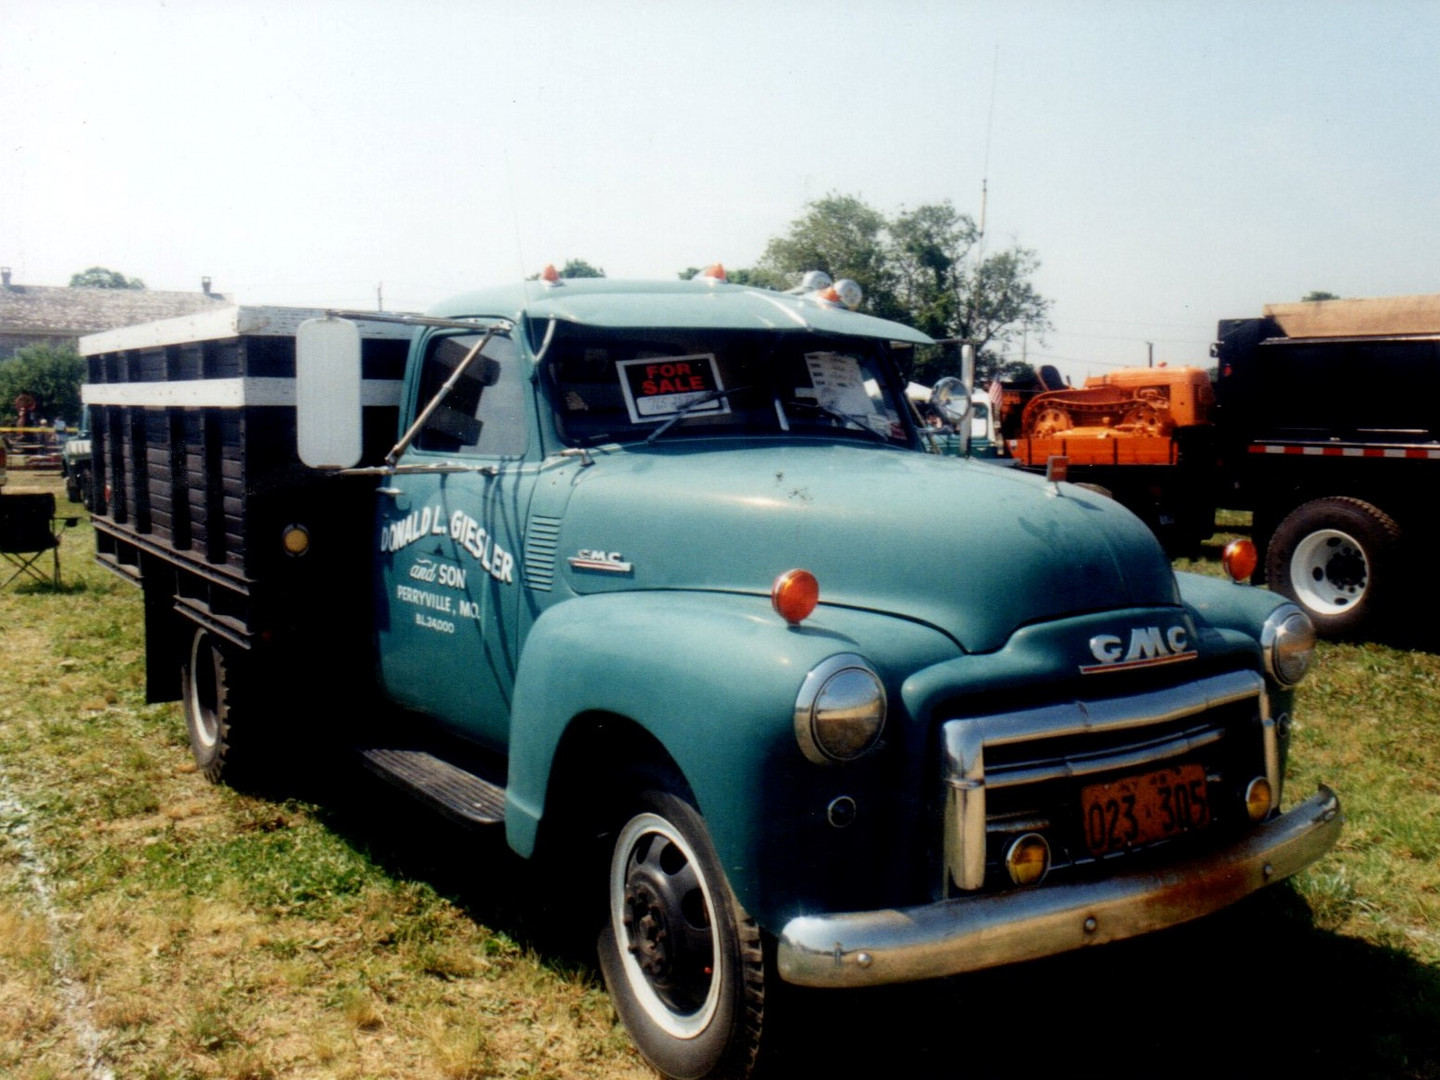 1948 GMC stake bed - Robert Mohr